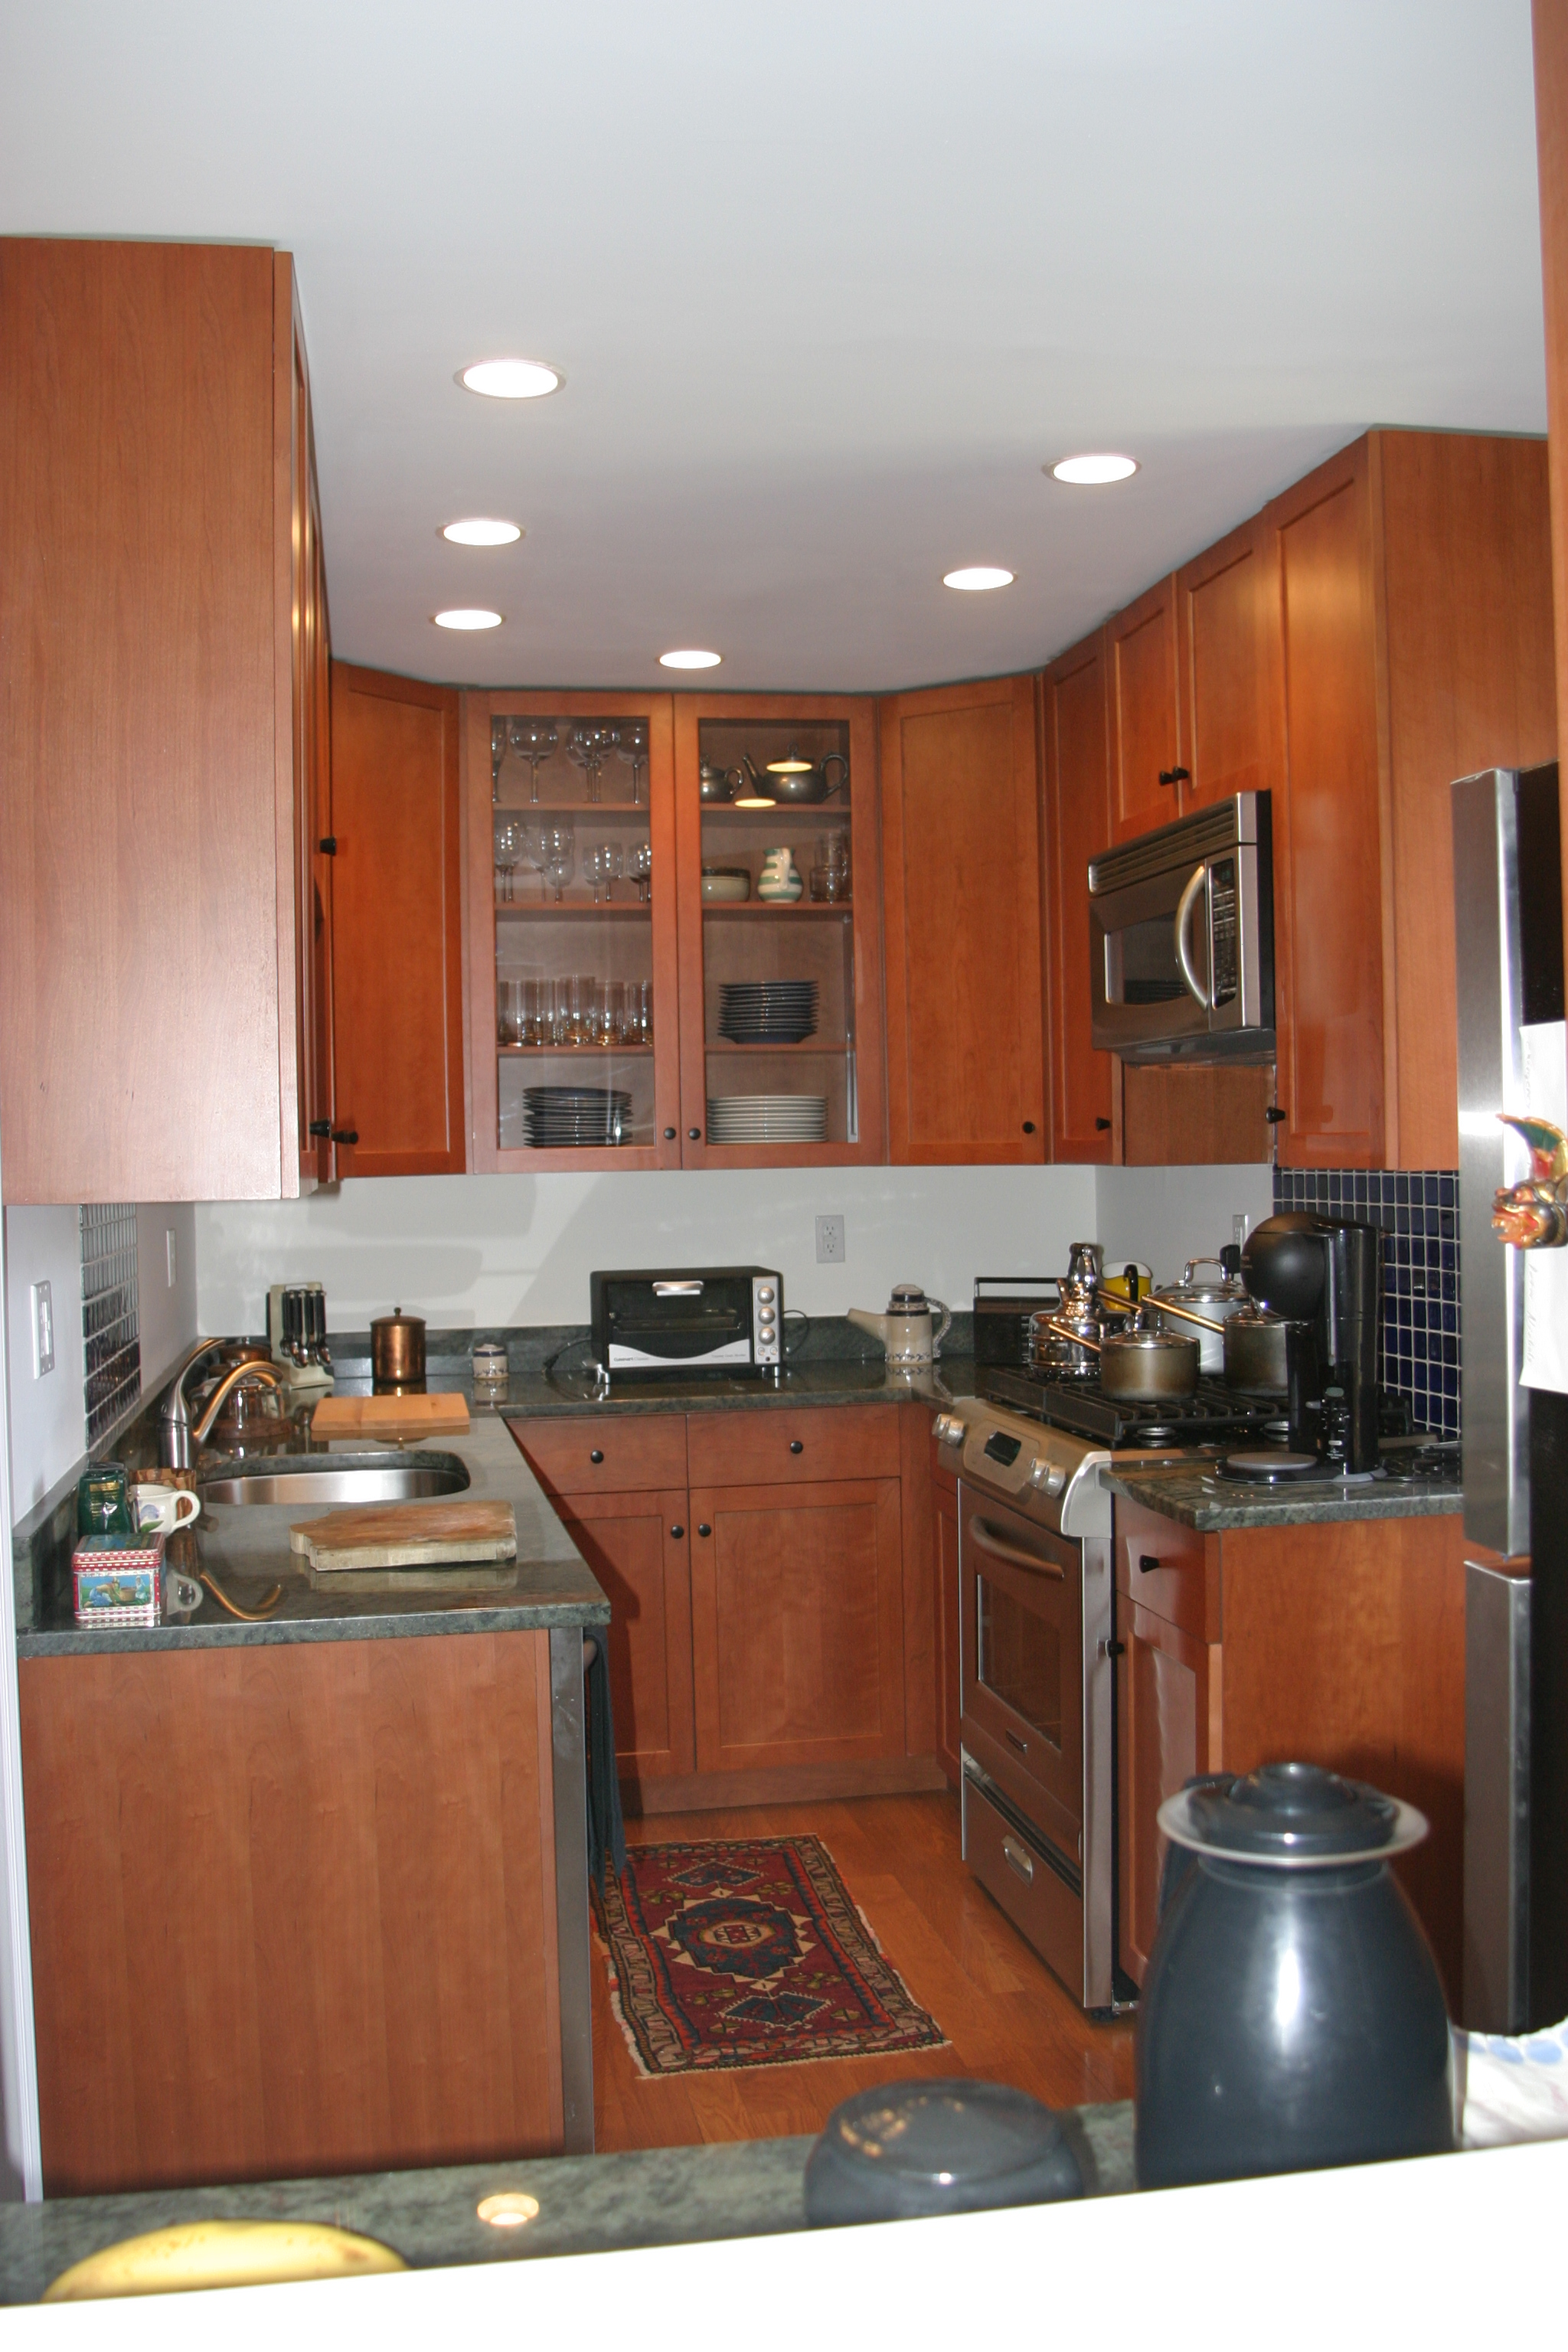 Kitchen cabinets in the bronx ny - Kitchen Cabinet Refacing Westchester Ny